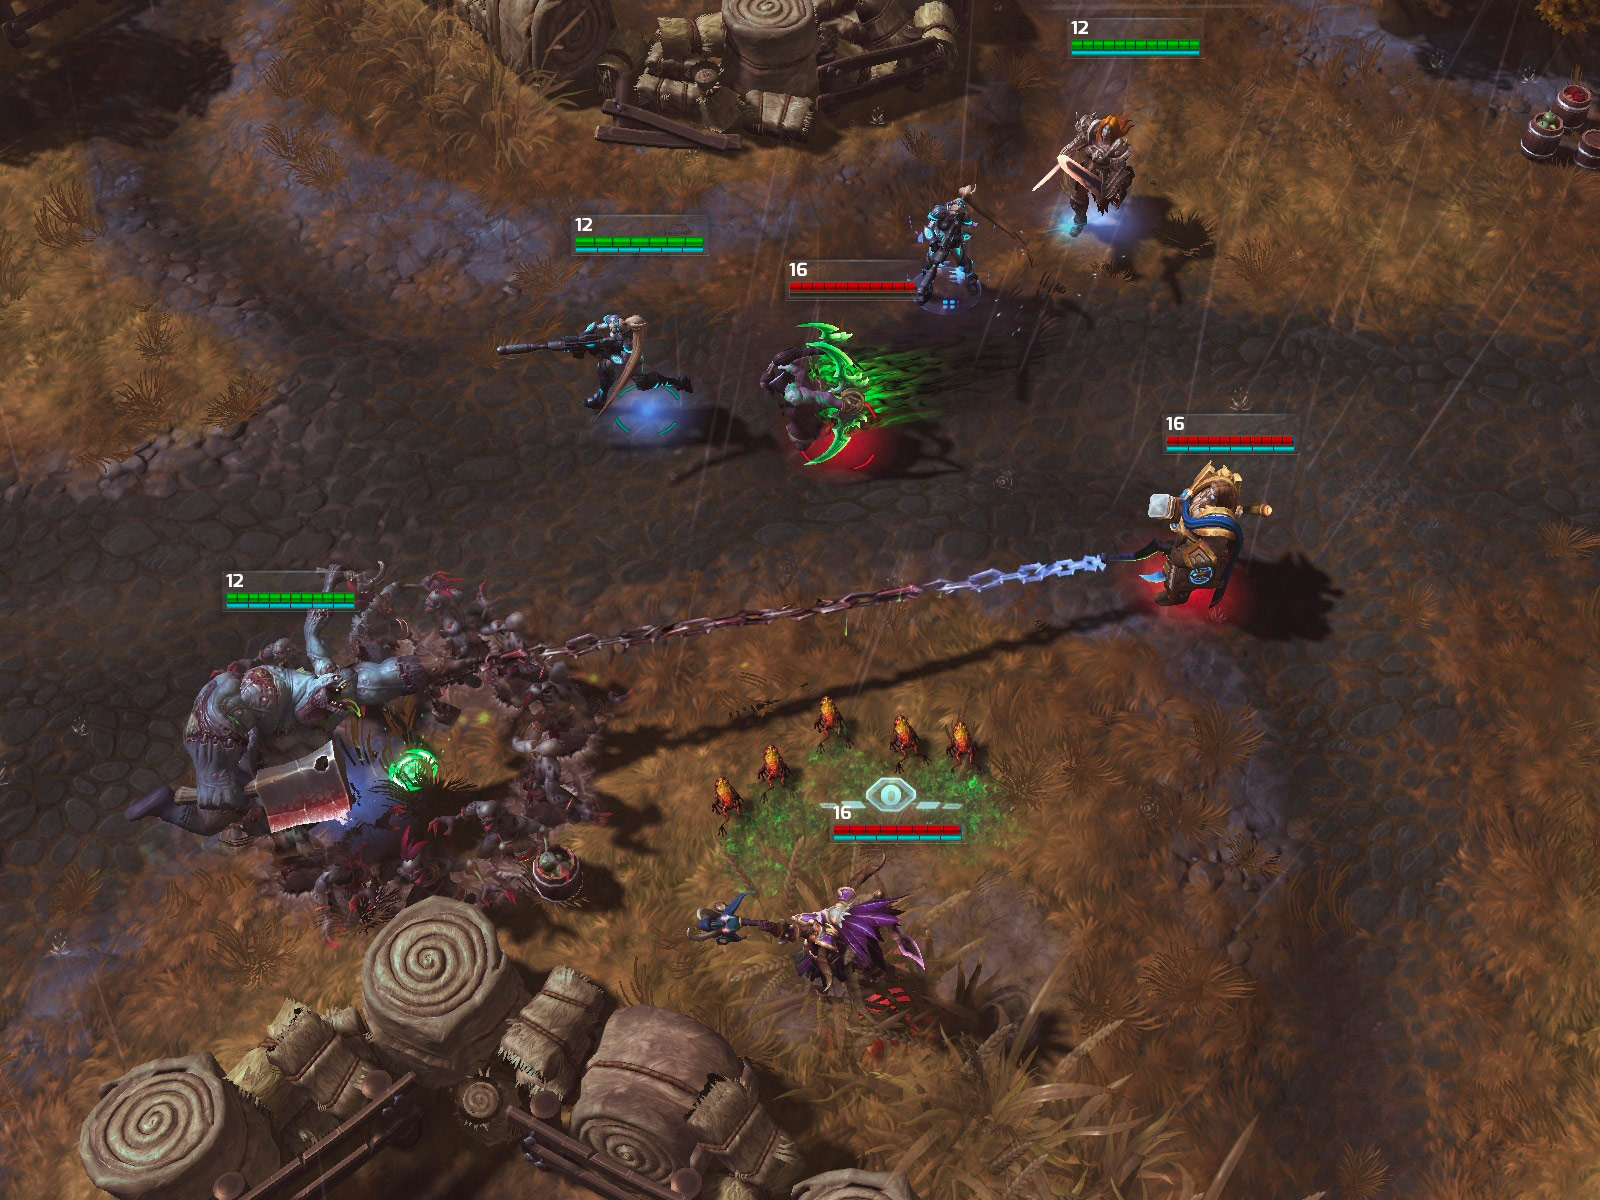 Heroes Of The Storm: Universes Collide In First Gameplay Trailer And Screenshots #29622